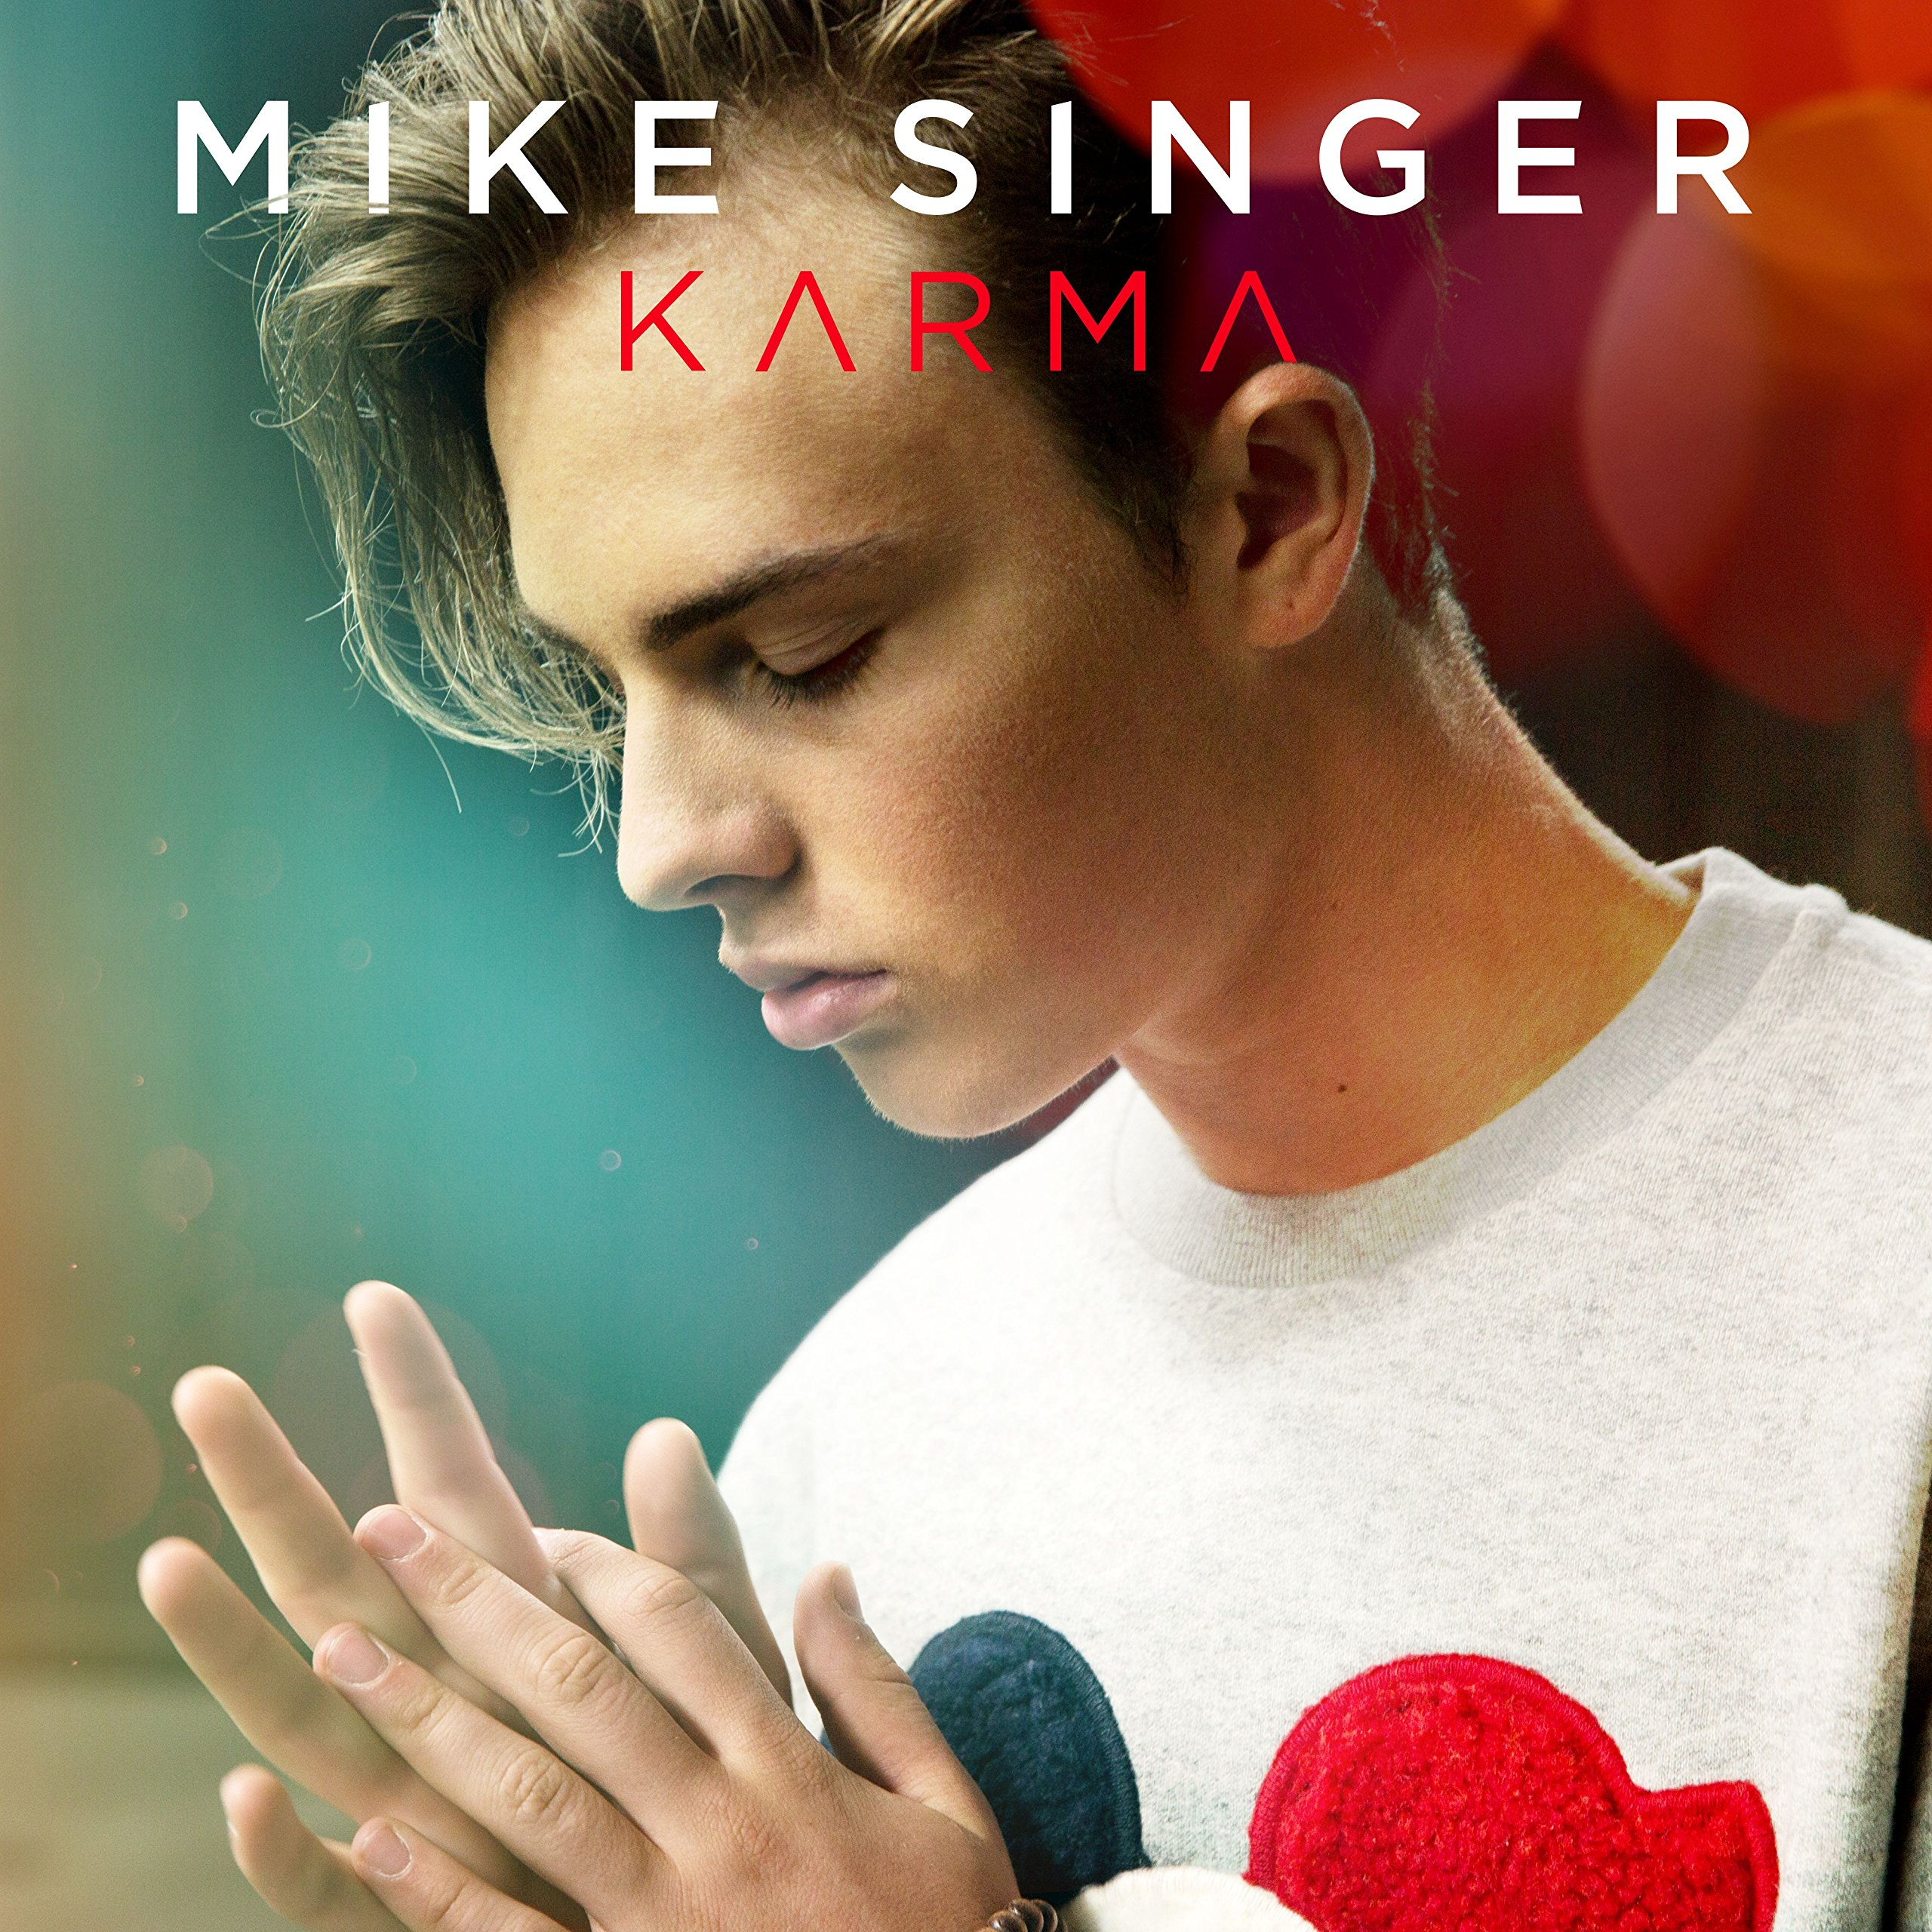 Karma als MP3-Download